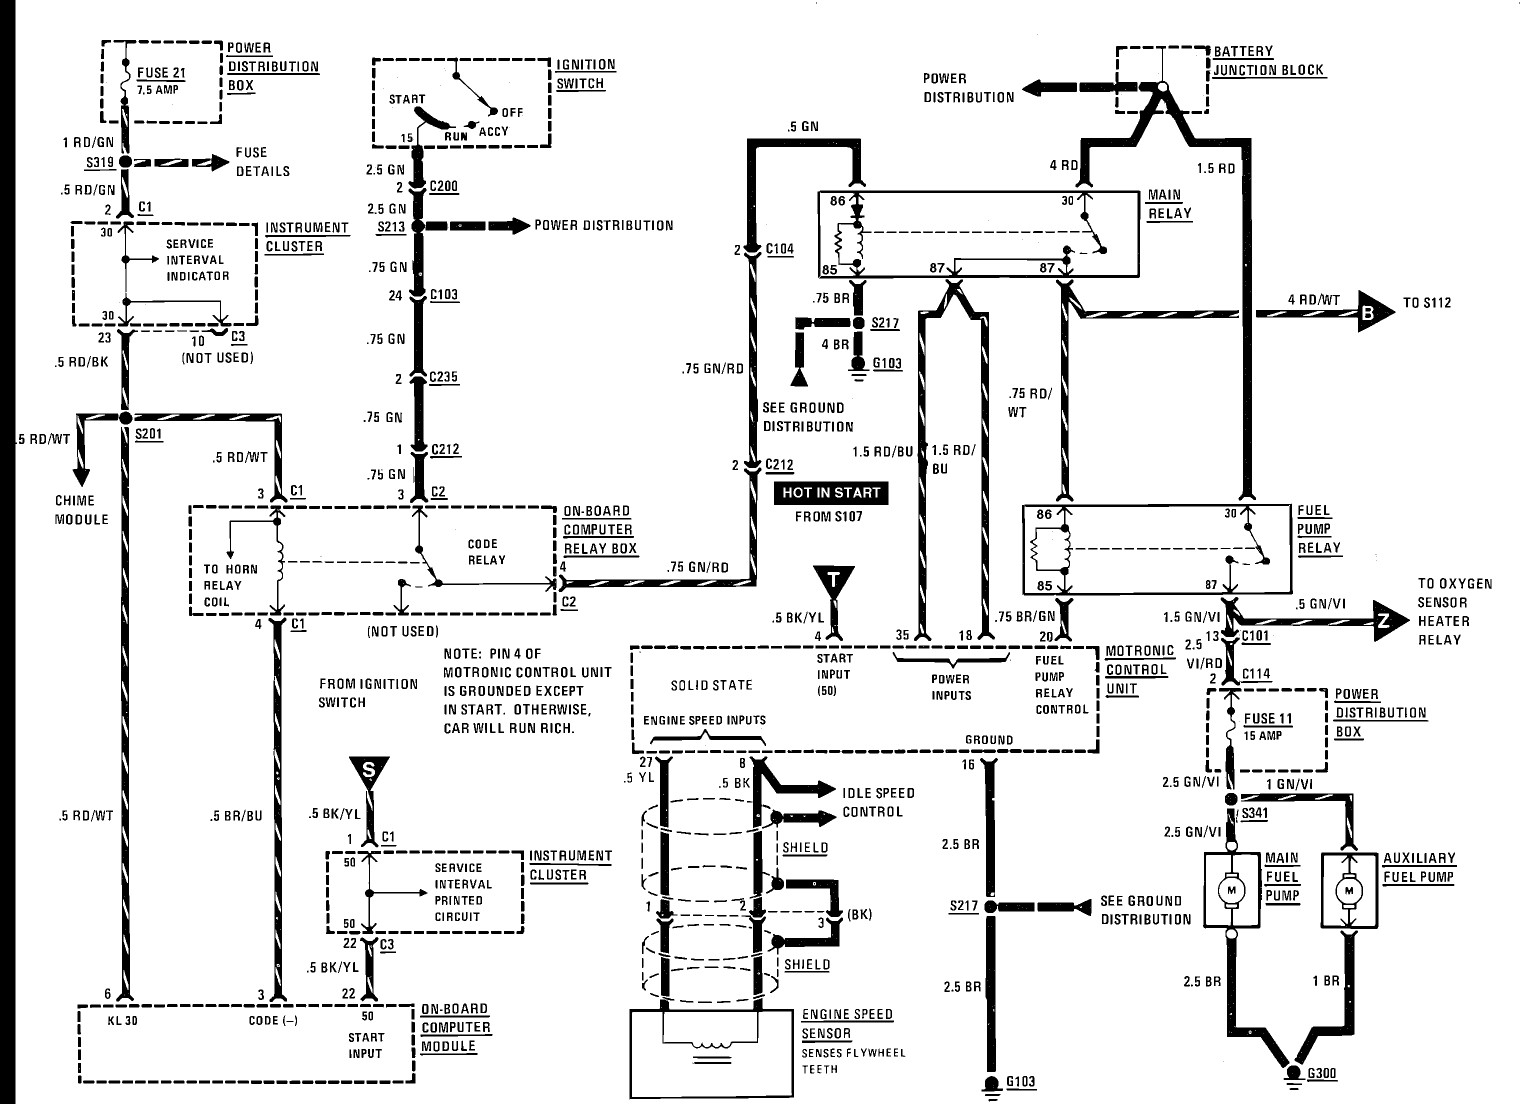 Wiring Diagram Bmw X5 - Wiring Diagram Go on